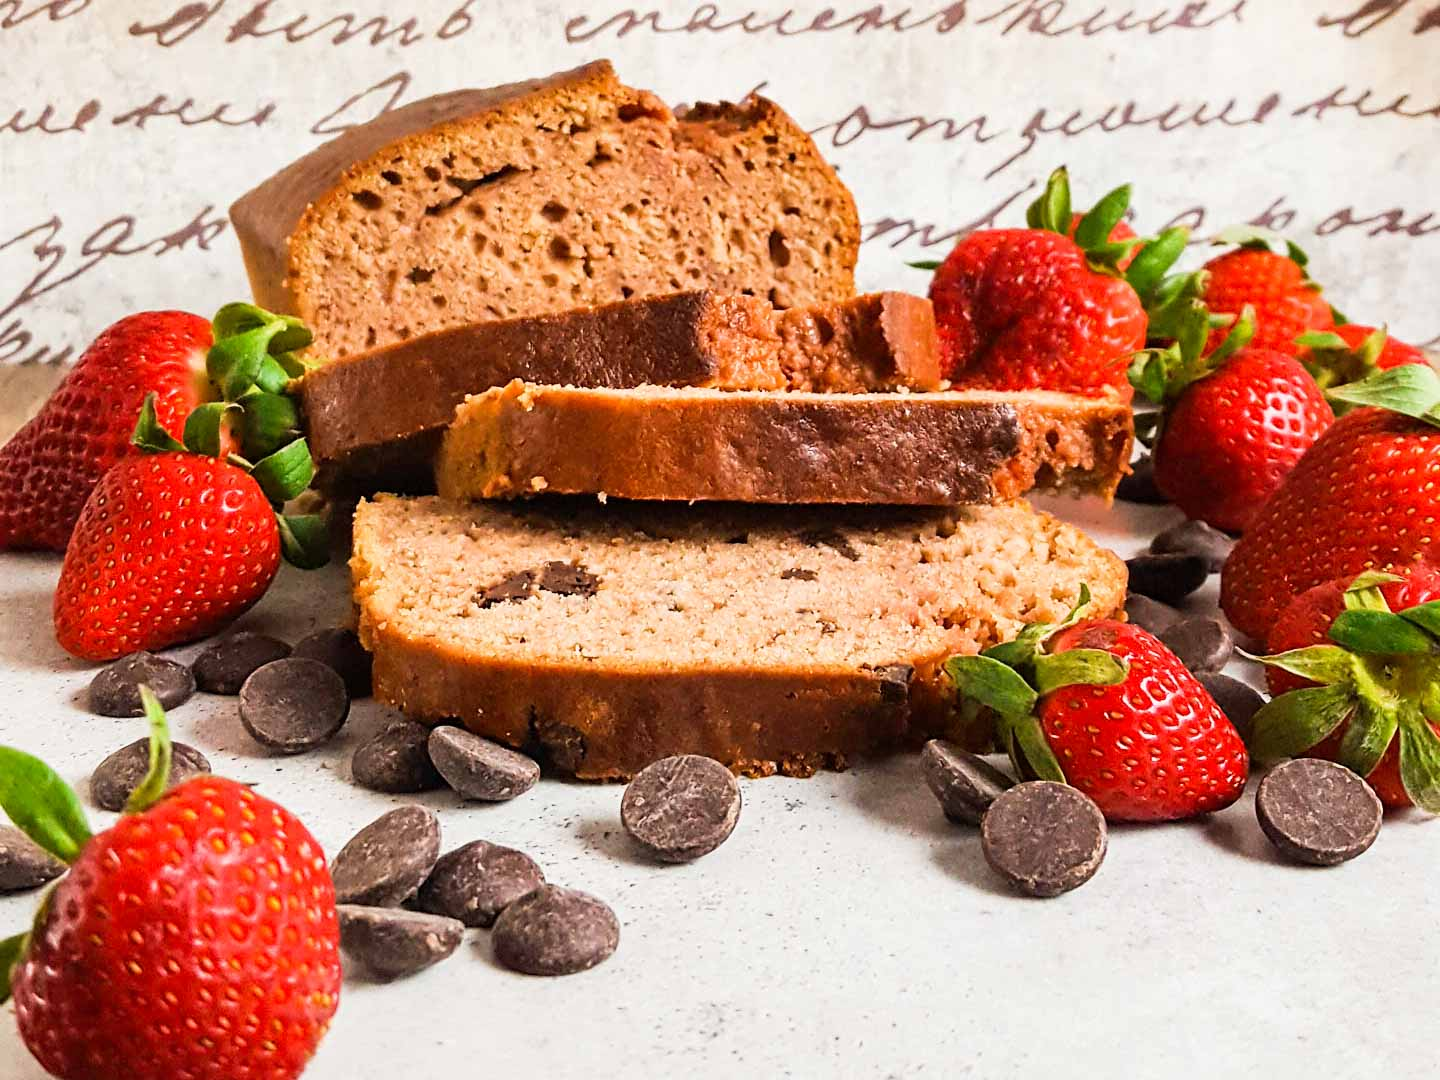 Slices of strawberry bread with chocolate chips